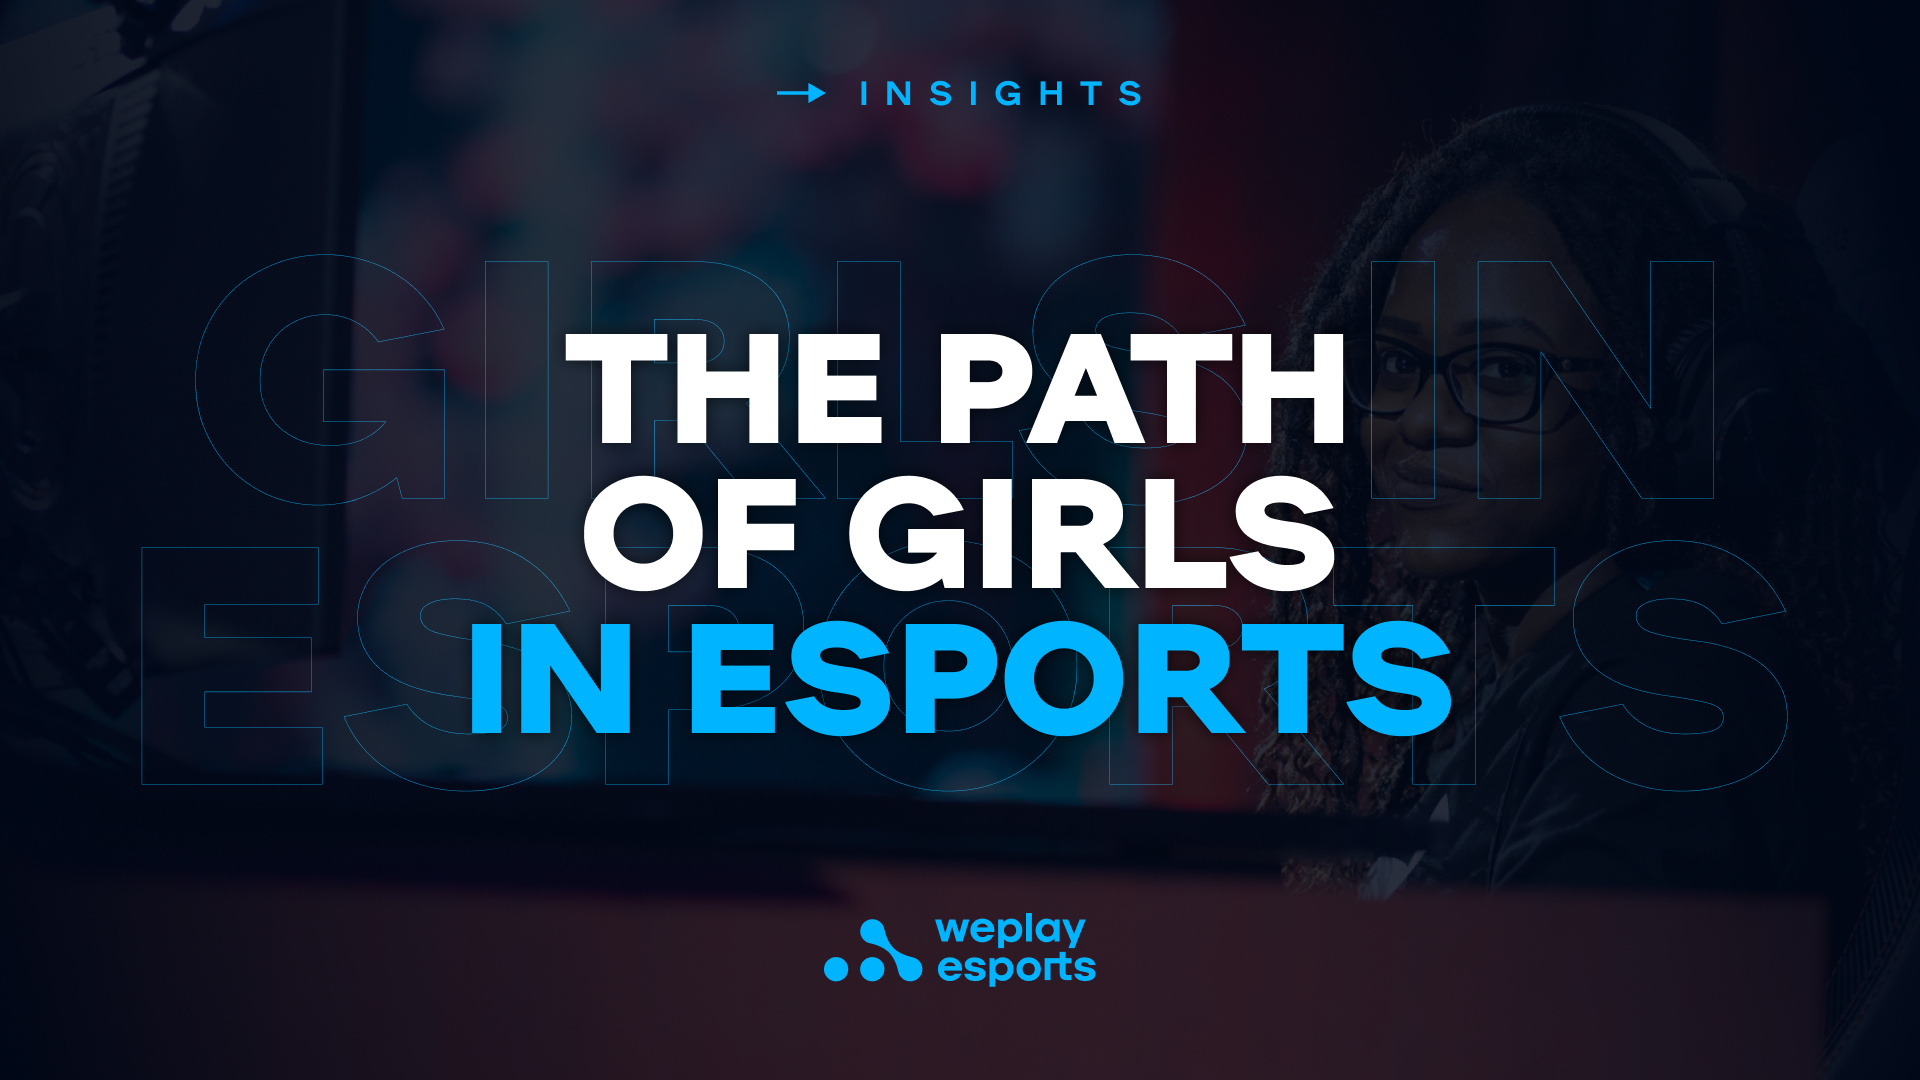 The Path of Girls in Esports. Image: WePlay Holding